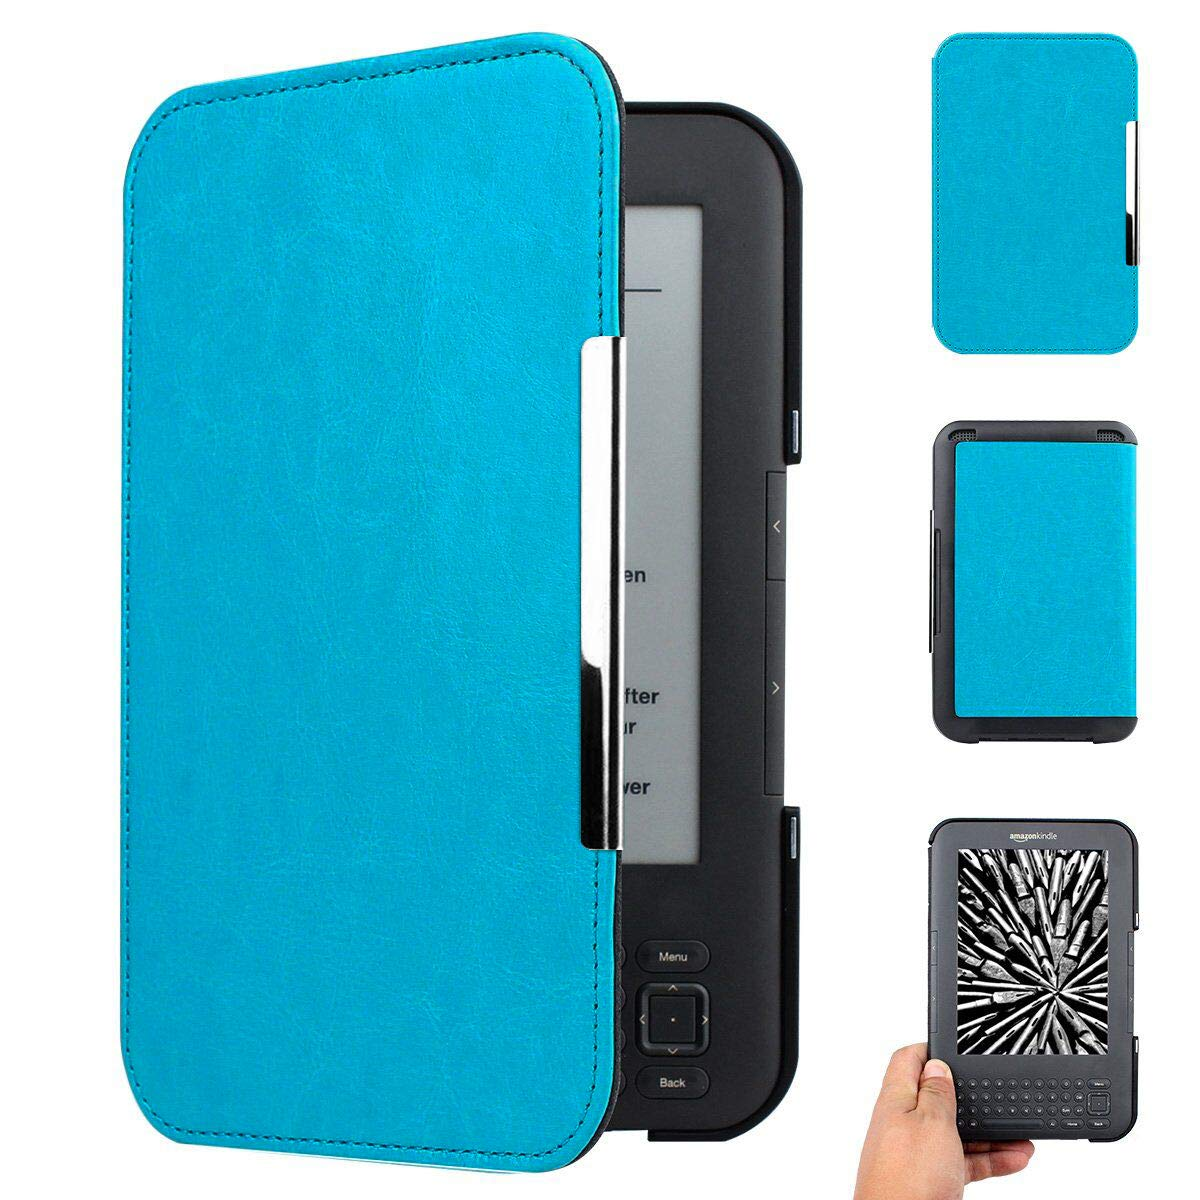 WALNEW Amazon Kindle Keyboard (kindle 3/D00901) Case Cover -- Ultra Lightweight PU Leather  Cover for Amazon kindle Keyboard(3rd Generation)Tablet with 6 Display and Keyboard (Light Blue)